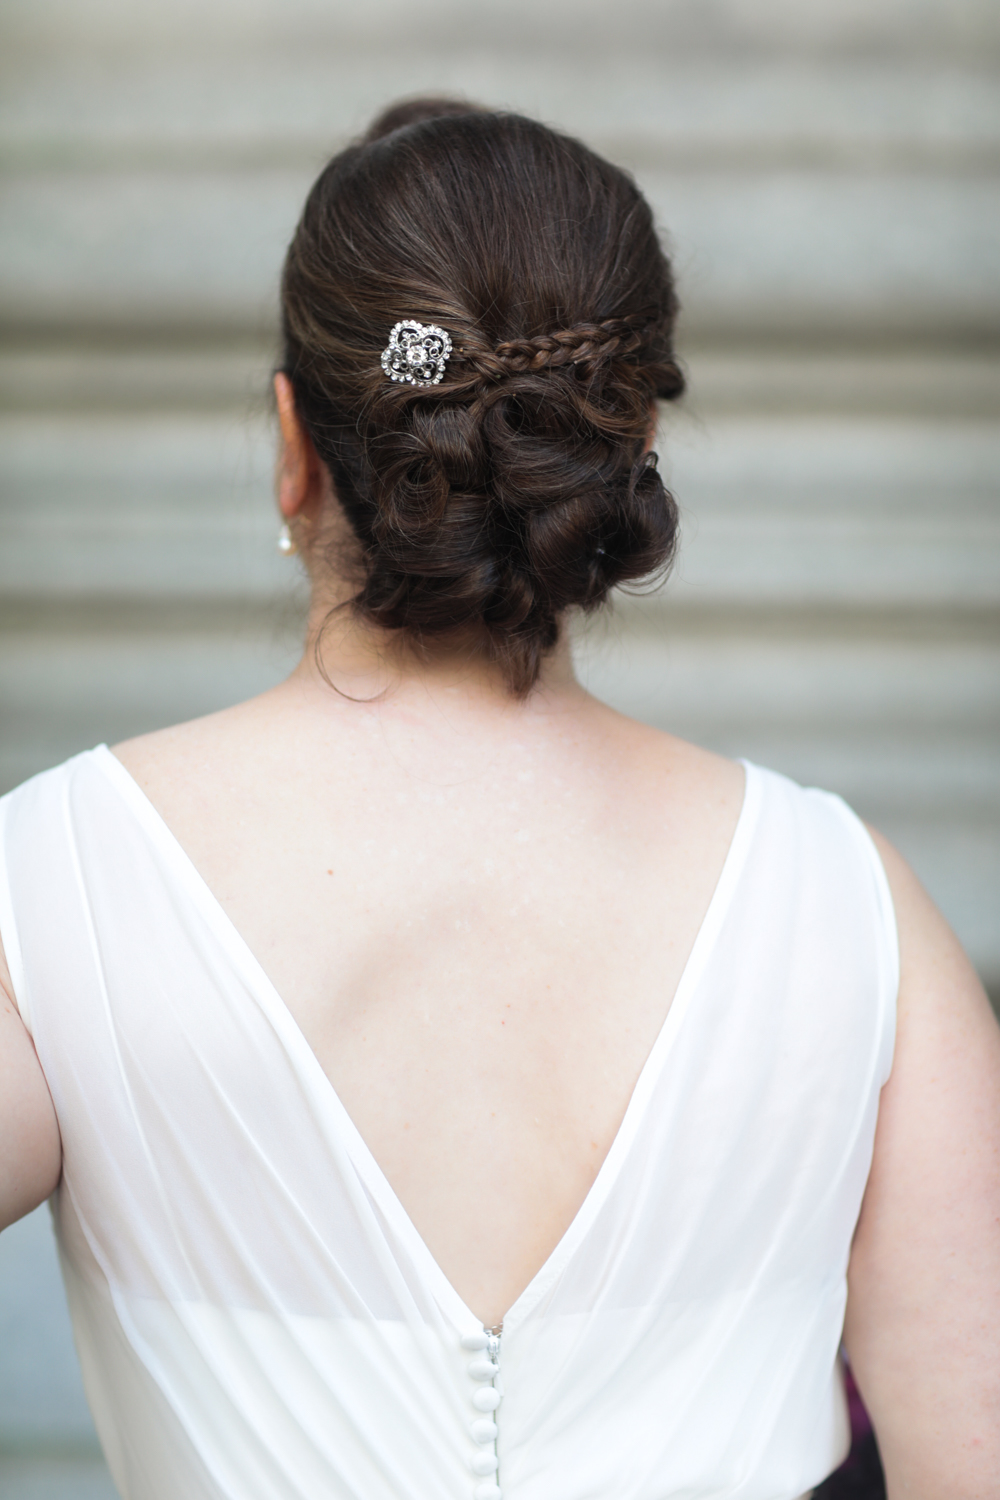 Portrait of the back of a bride's dress and homemade wedding hair clip.